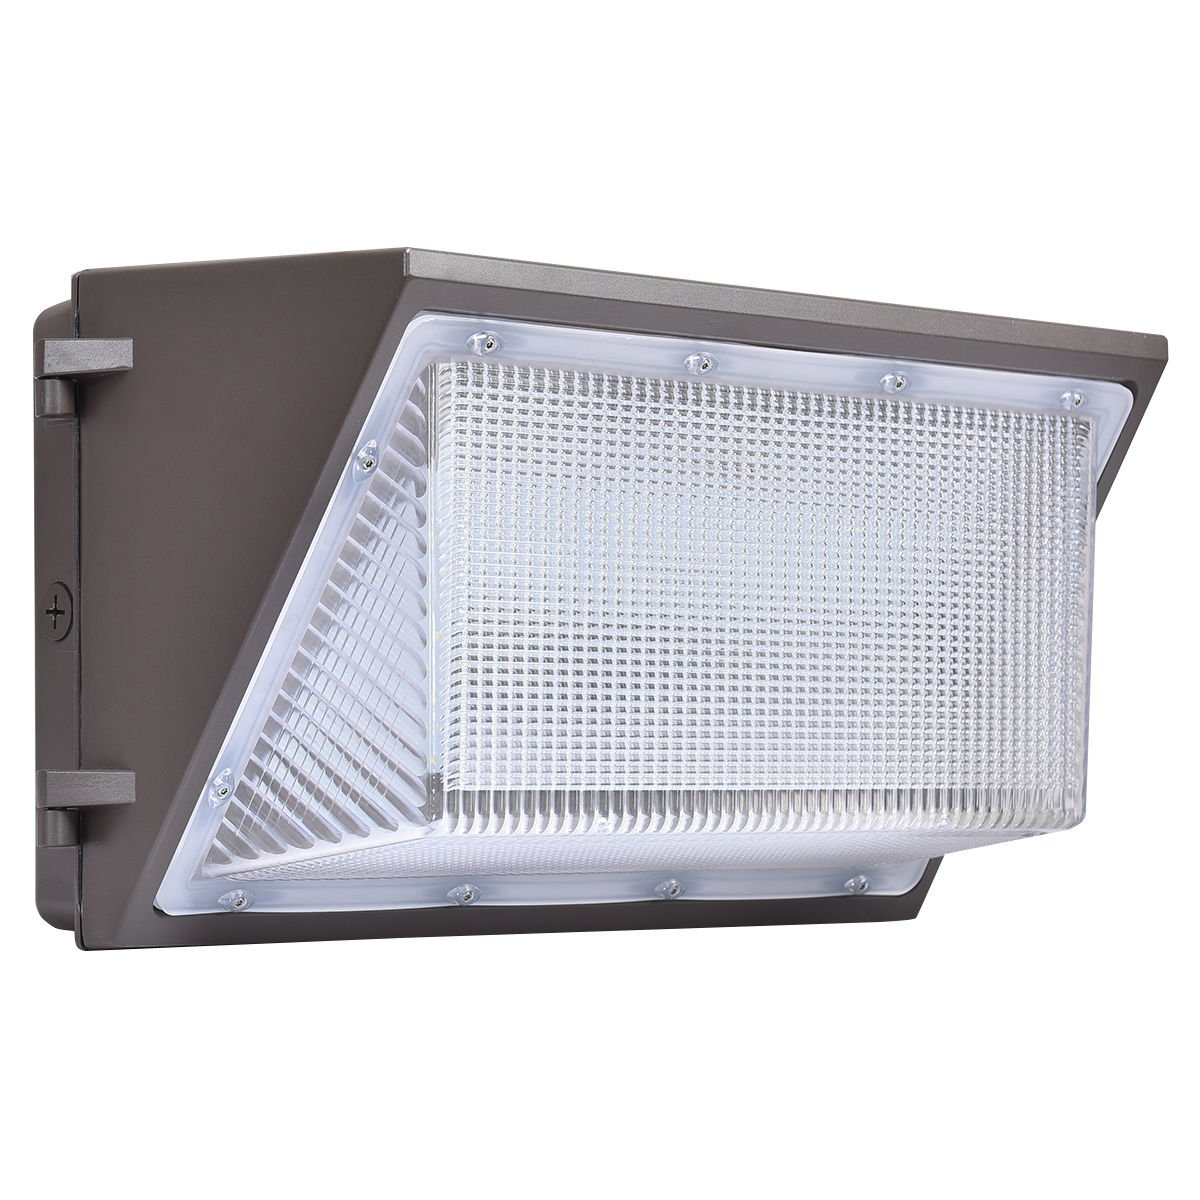 Tangkula 135W LED Wall Pack Wall Light Outdoor Waterproof Lamp DLC Listed, 5000K 16400Lm